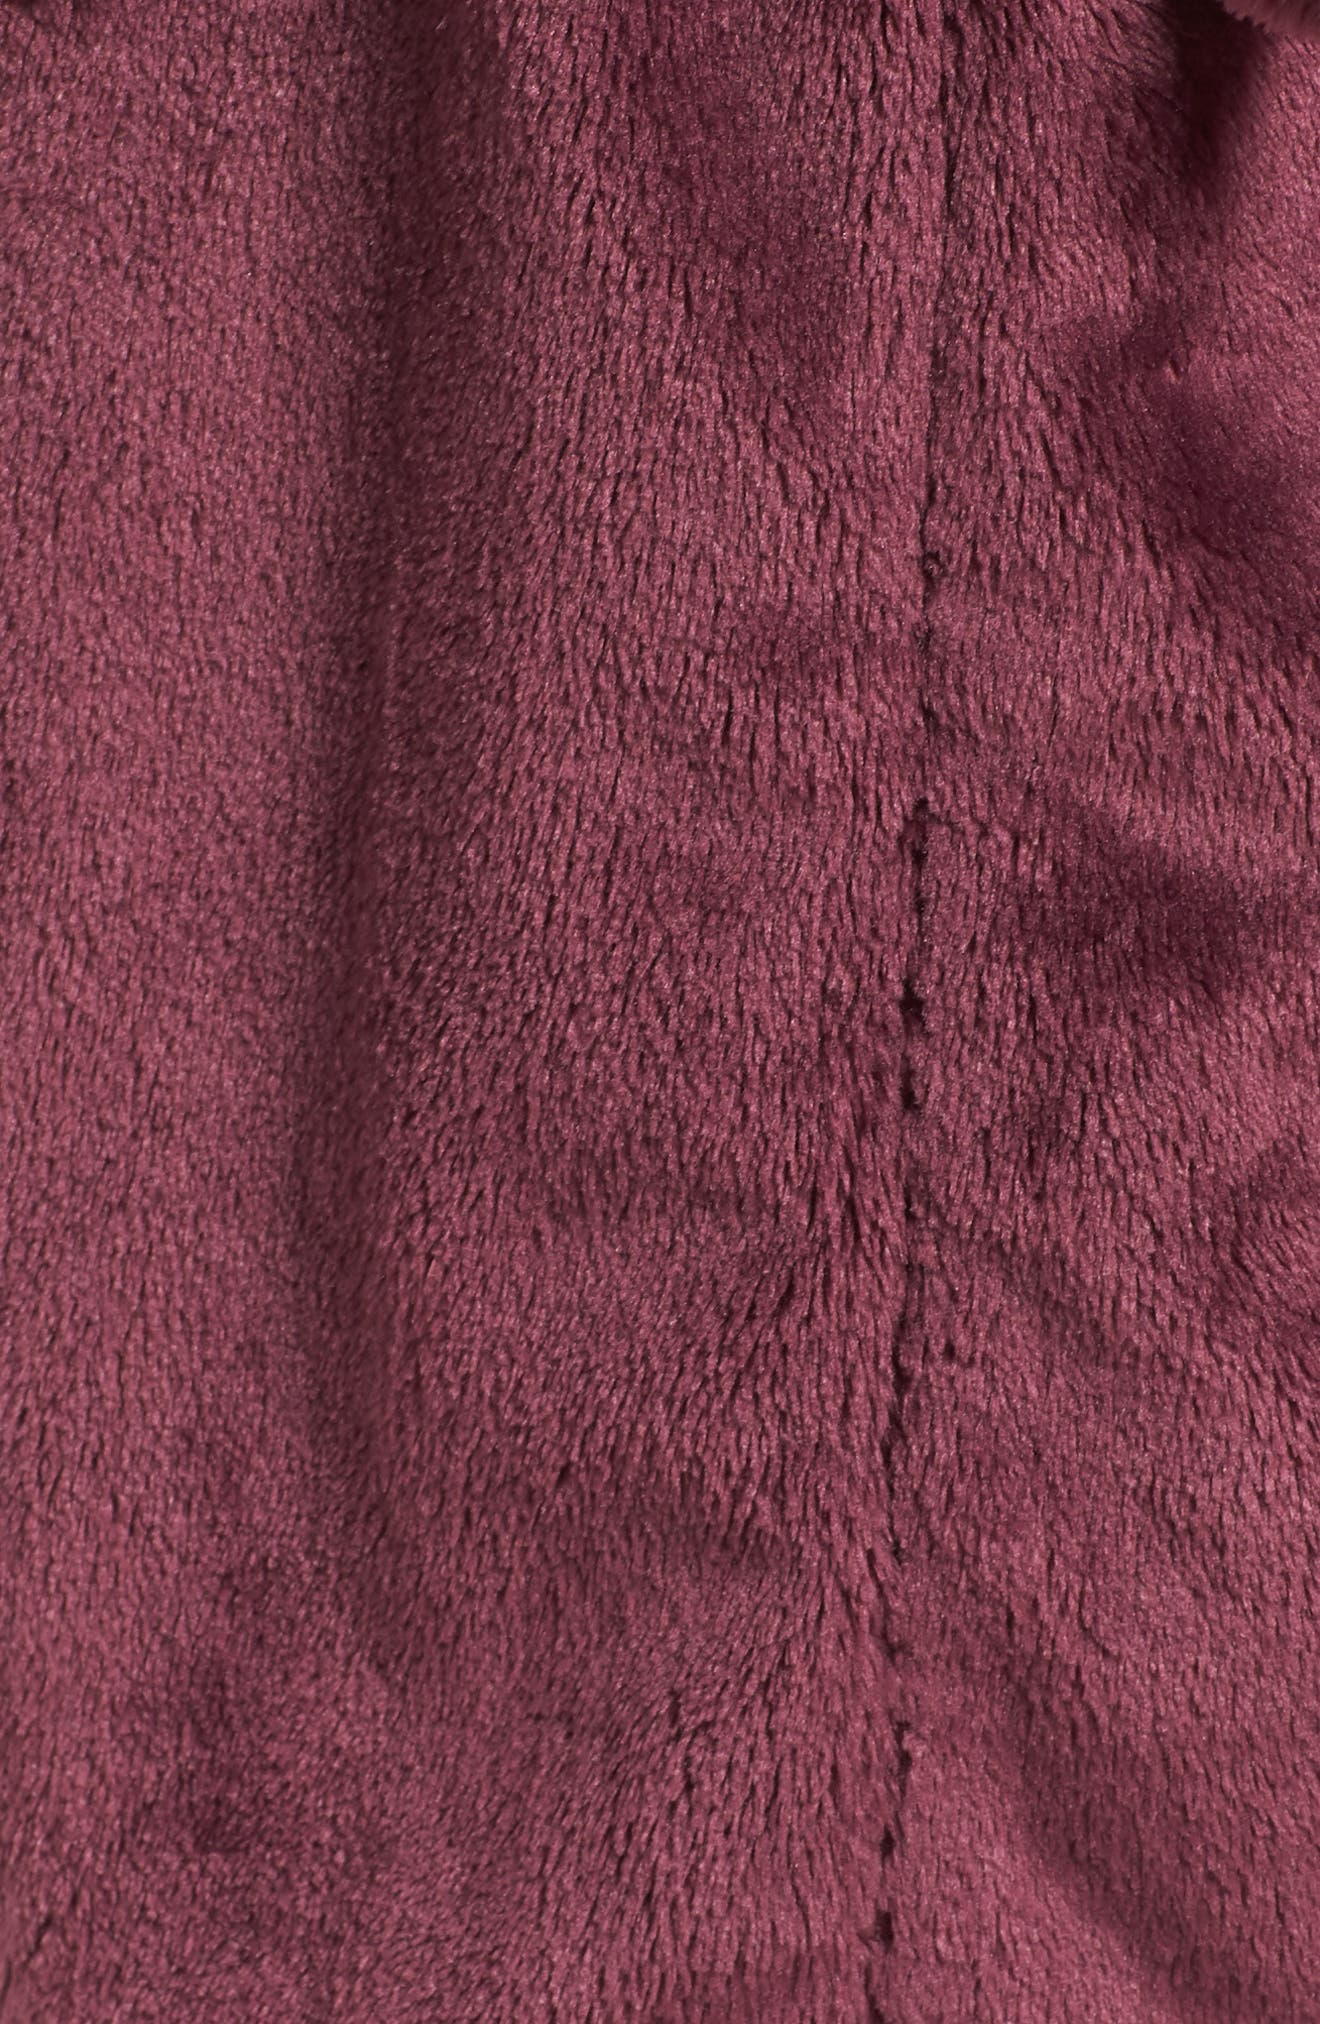 Nordstrom So Soft Plush Robe,                             Alternate thumbnail 5, color,                             PURPLE CRUSH